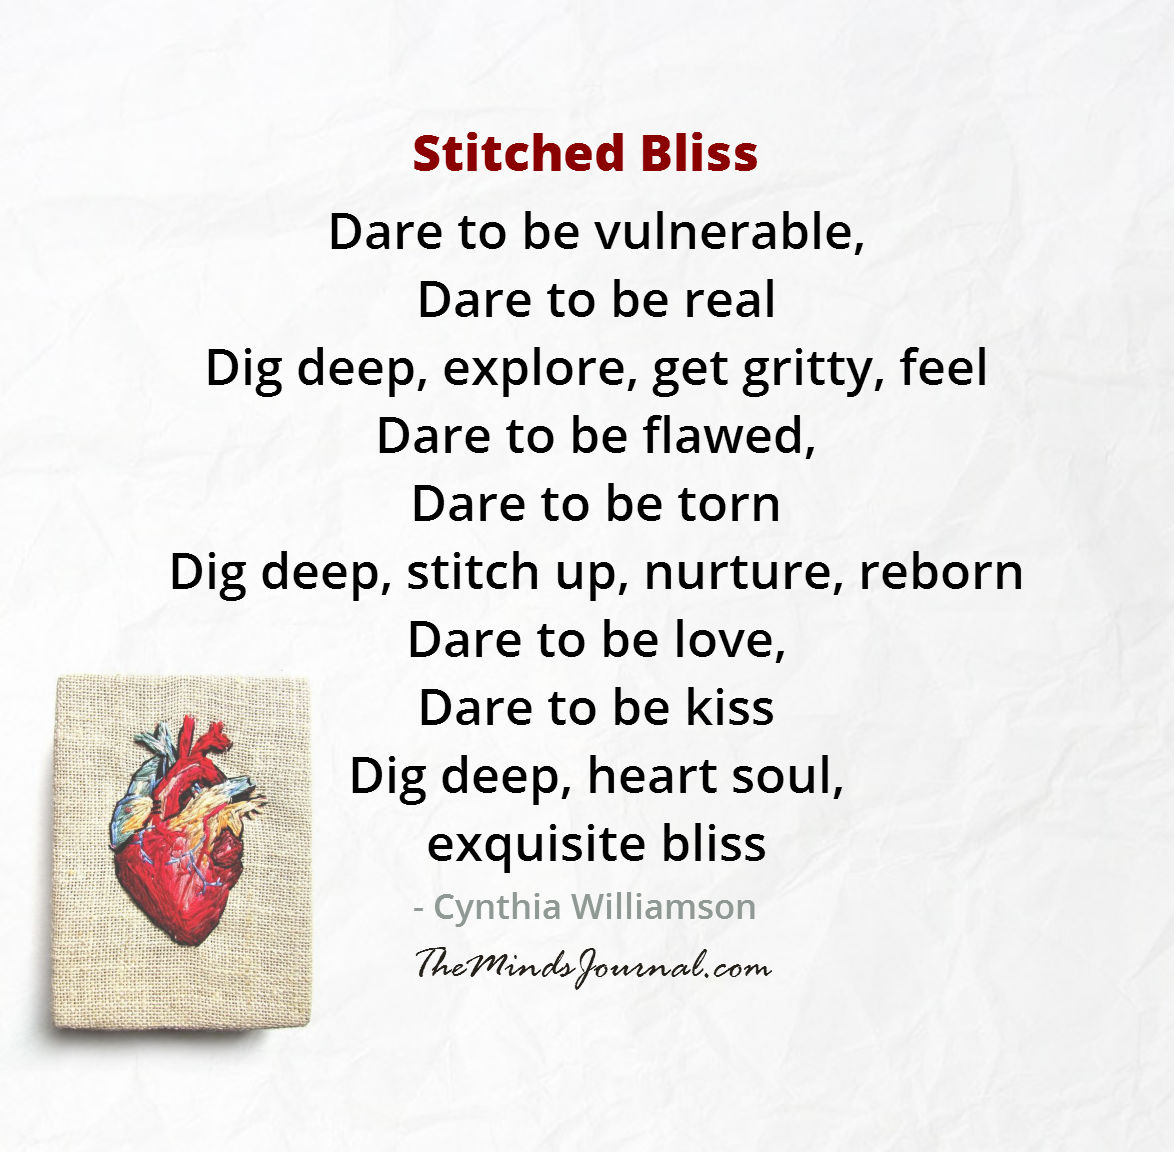 Stitched Bliss